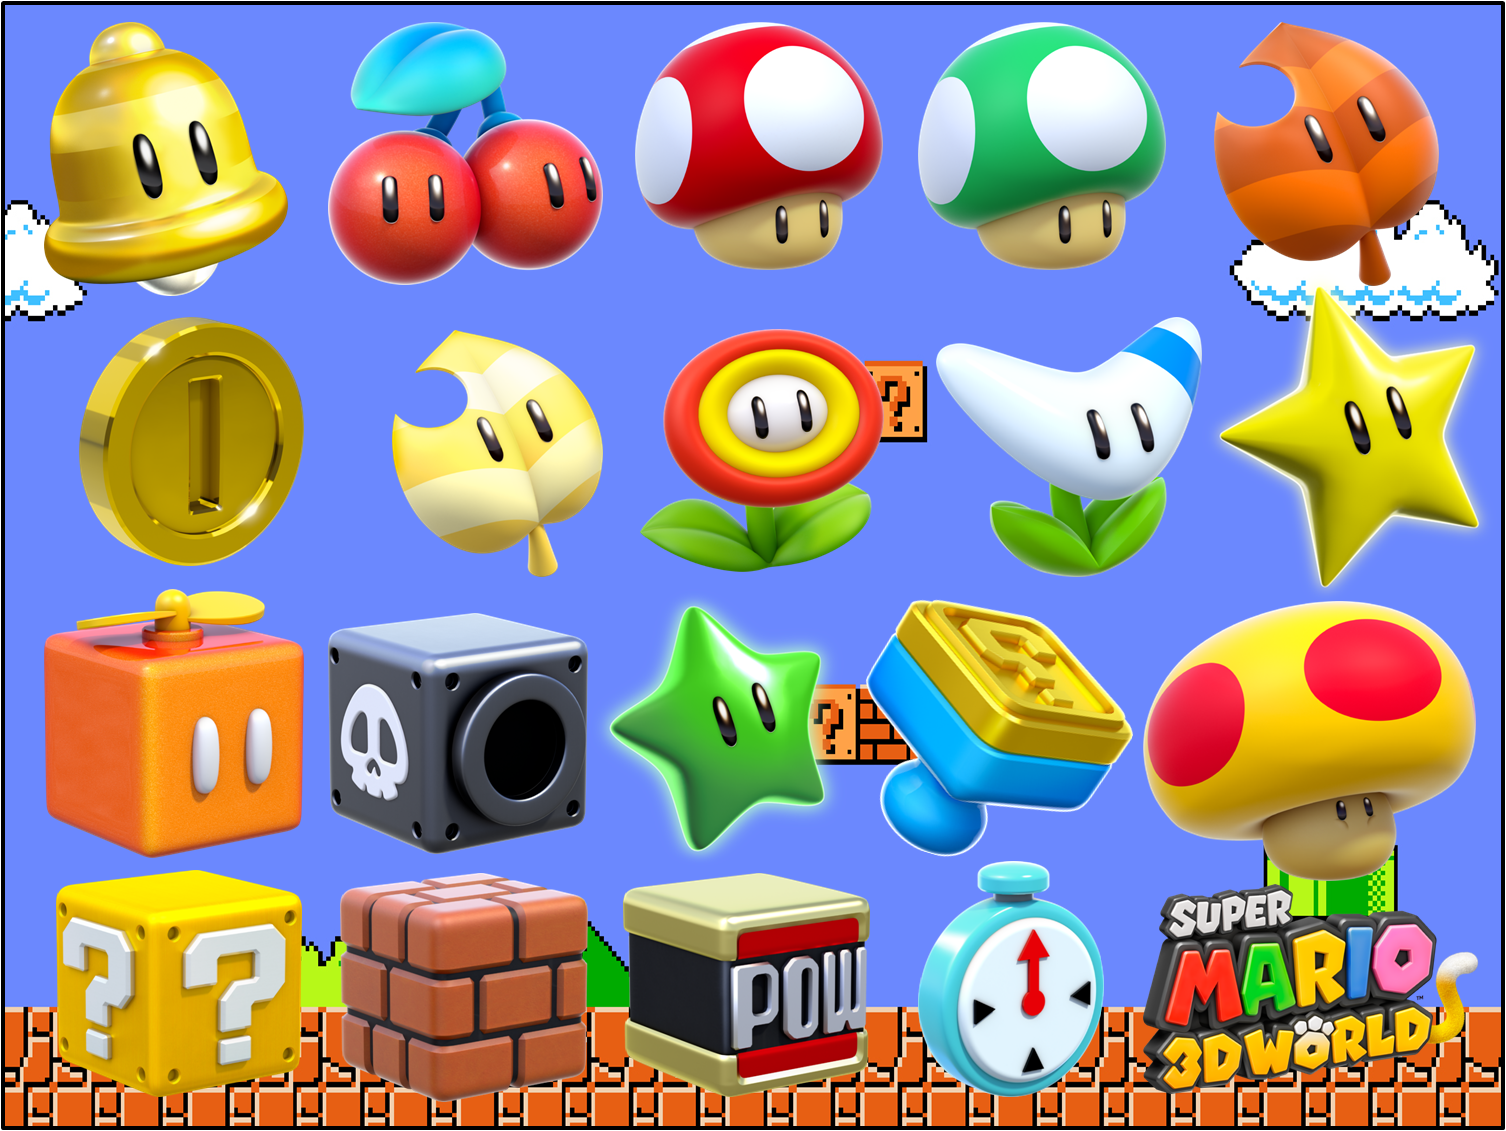 Super Mario 3D World - Power-Ups | Super mario 3d, Mario